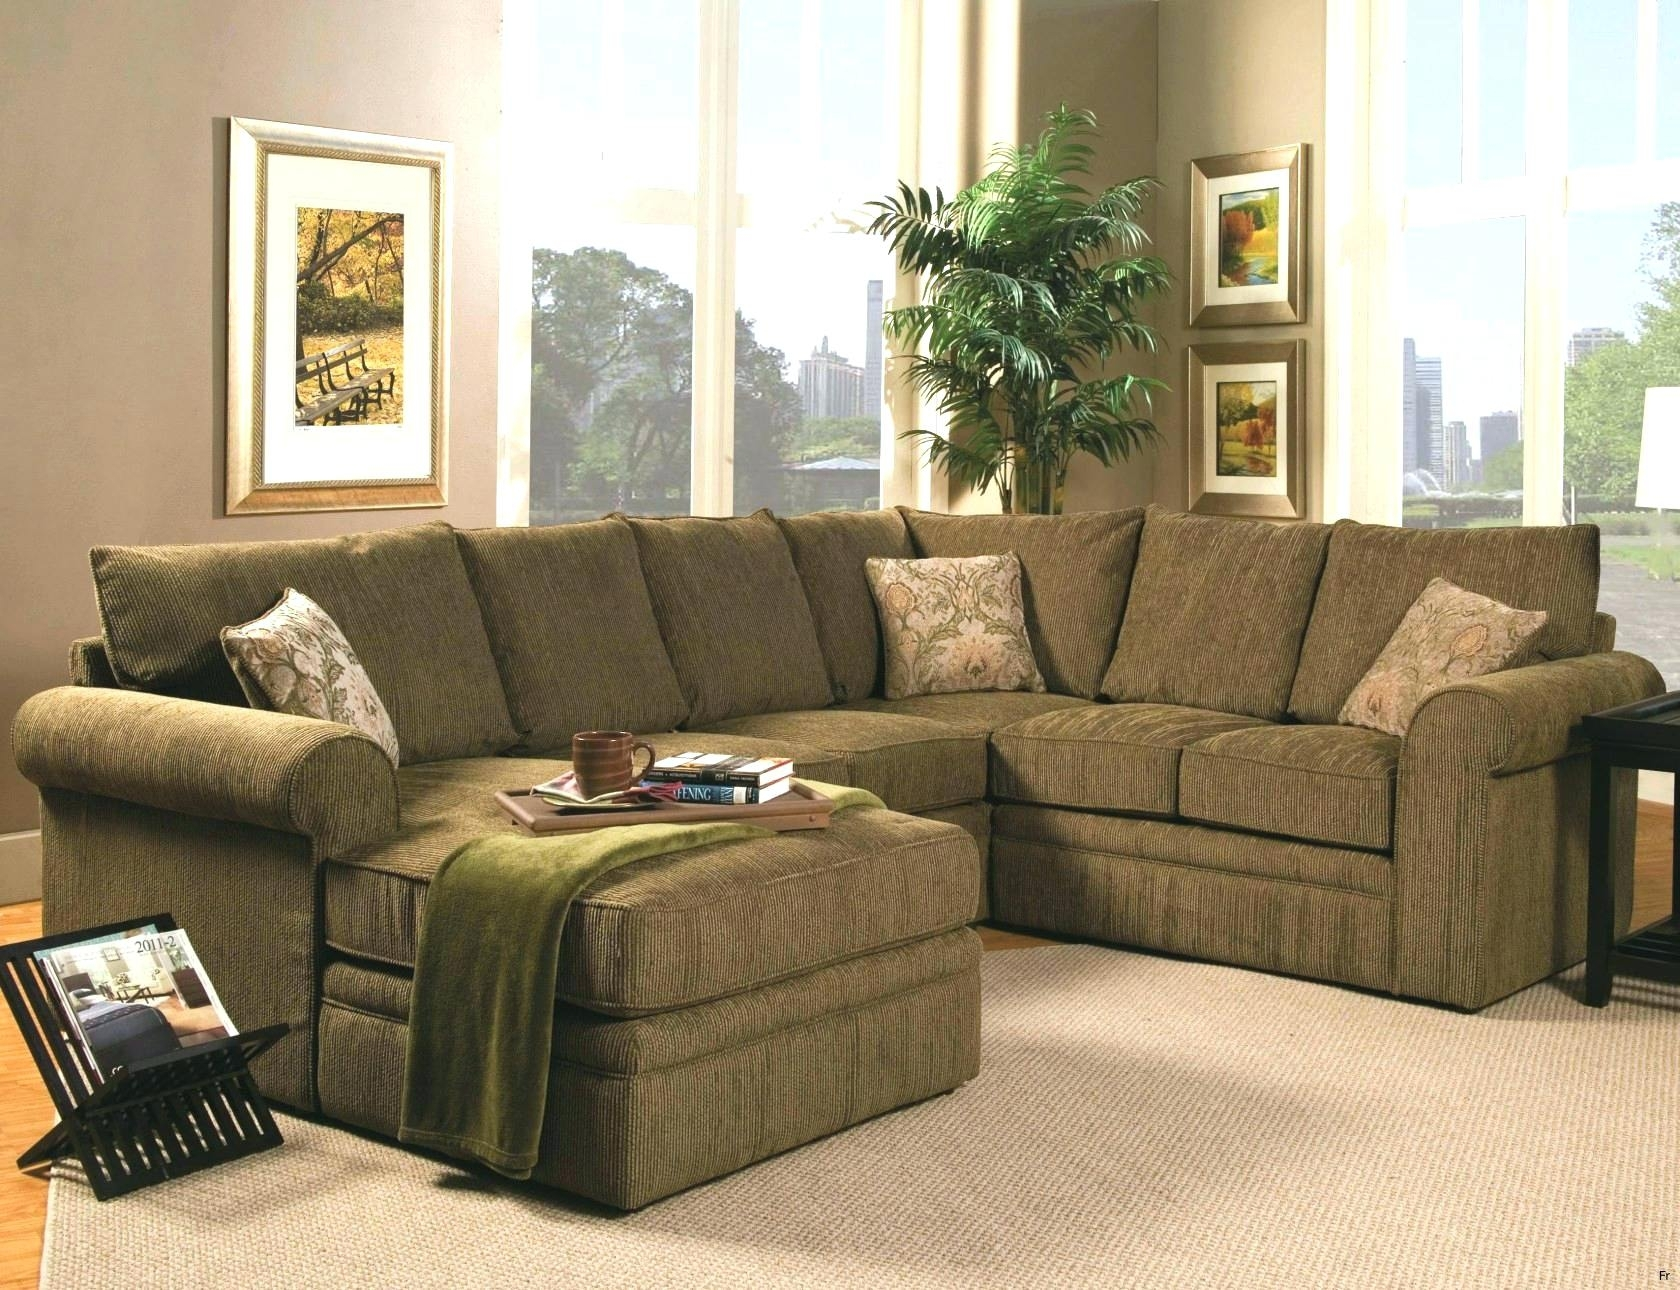 Green Sectional Couch Bay Wi Sectionals Sofas Olive Leather Pertaining To Green Sectional Sofas With Chaise (Image 5 of 10)